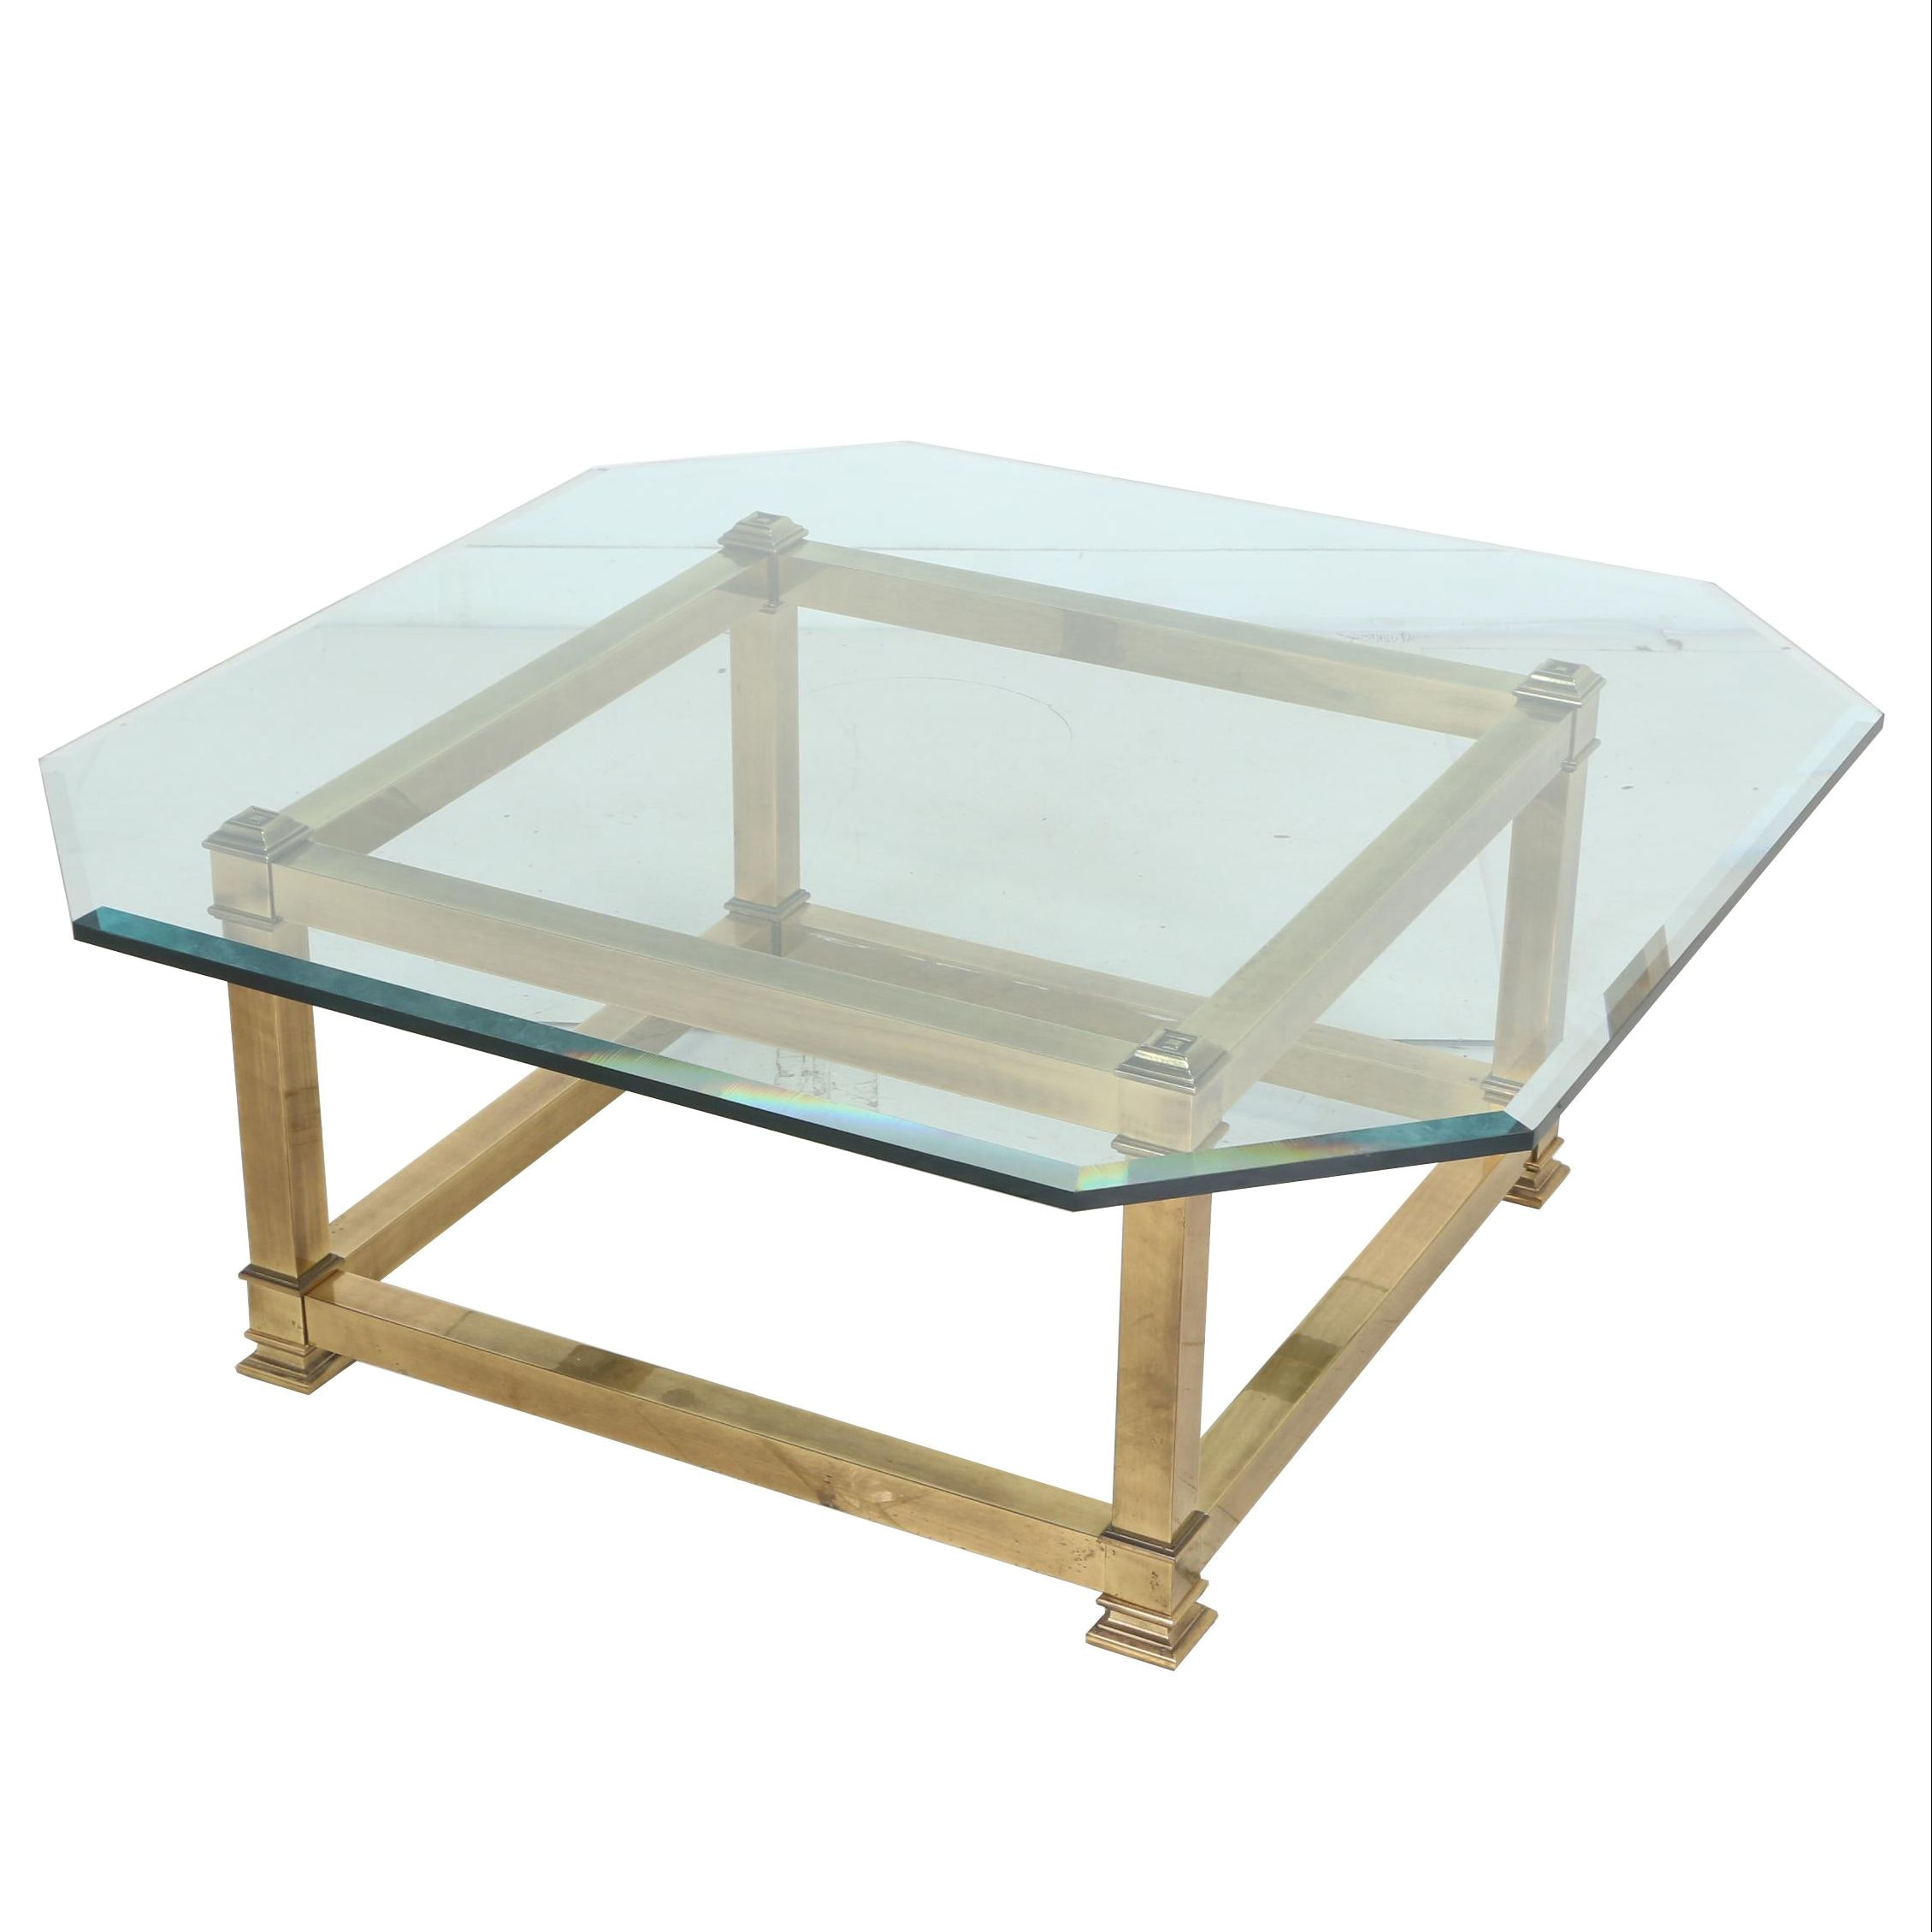 Brass and Glass Coffee Table, Manner of La Barge, Late 20th Century